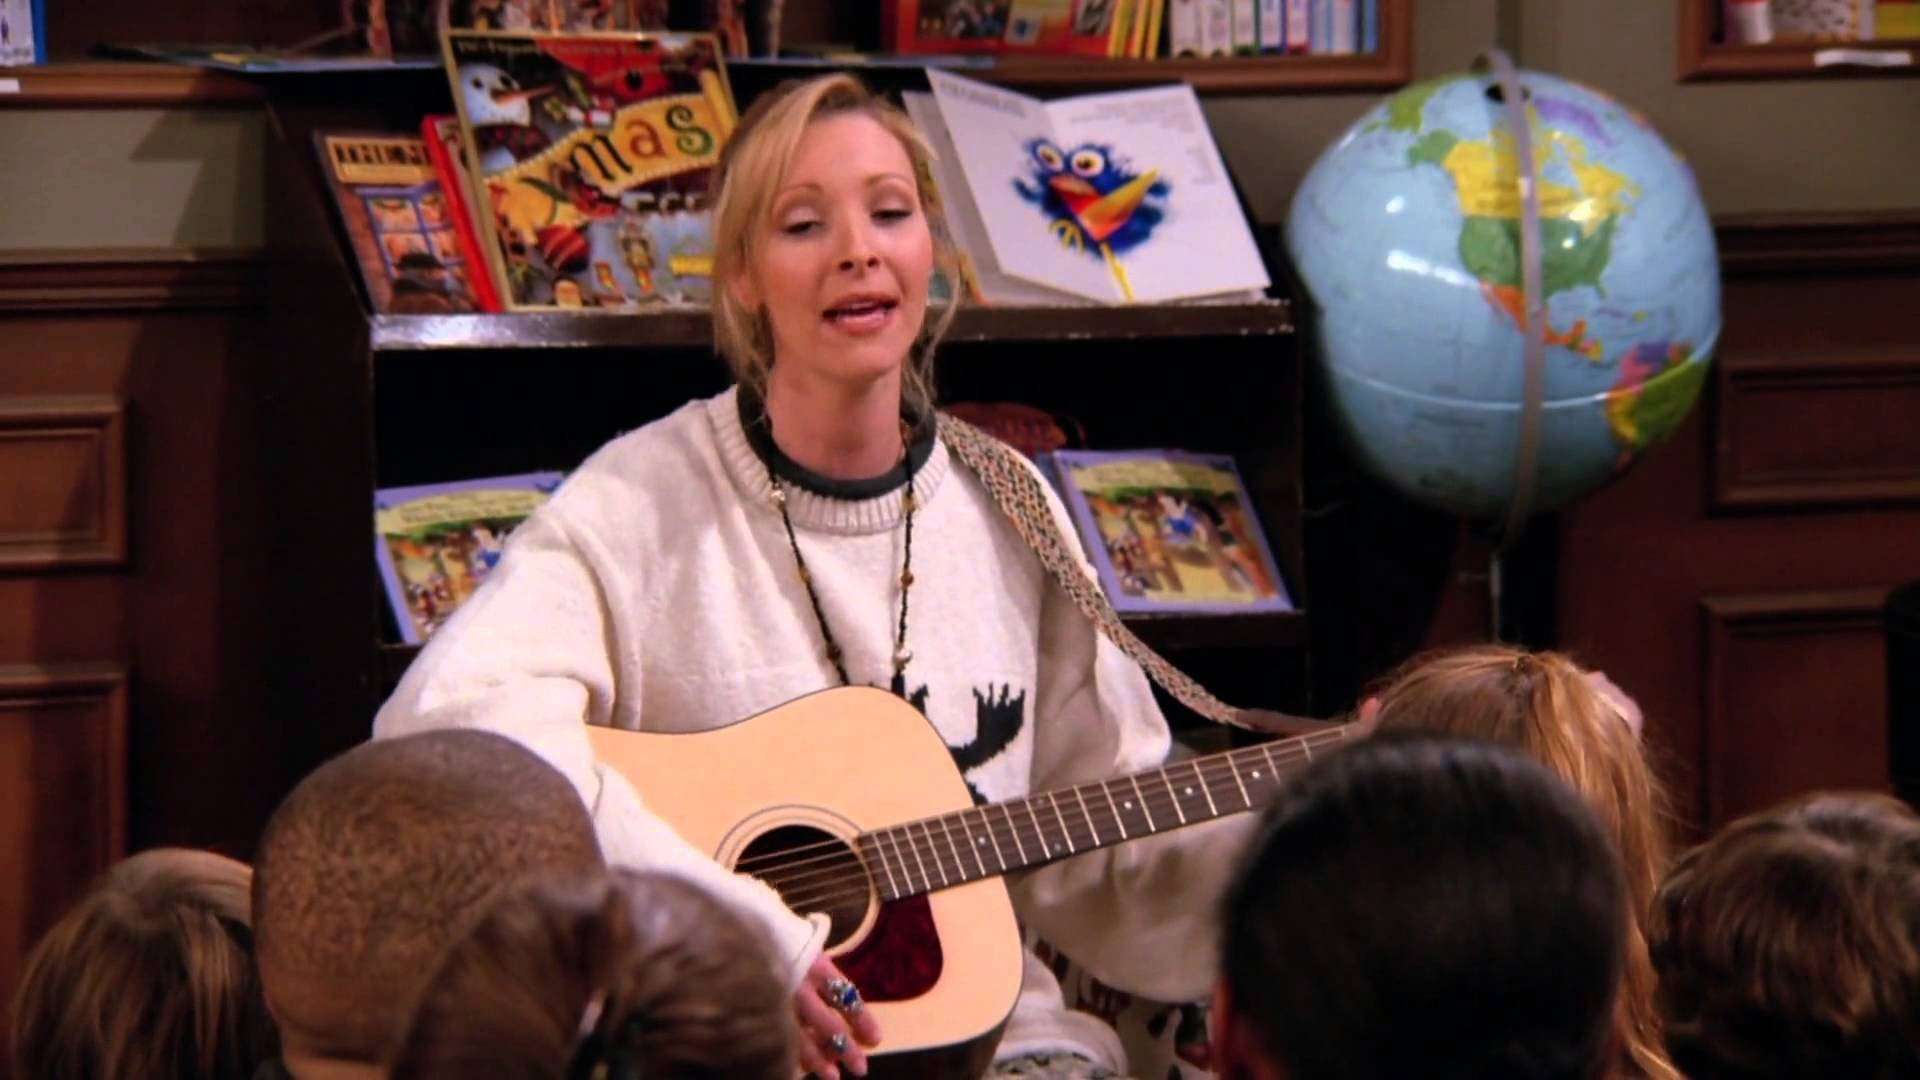 An investigation into how Smelly Cat came to be so infamously smelly